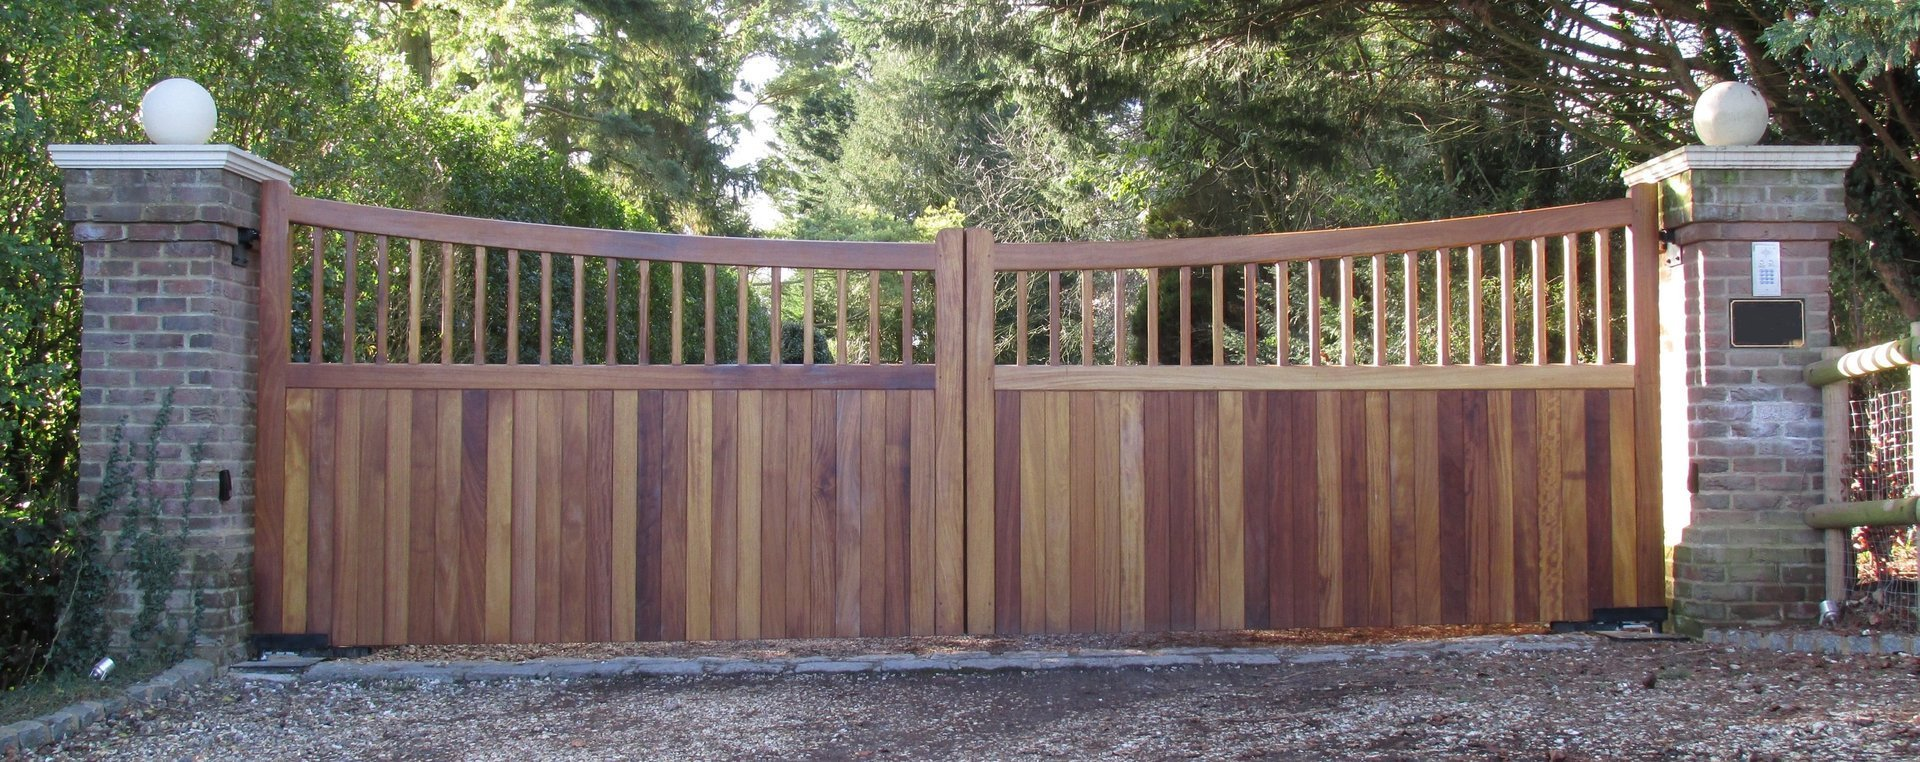 wide wooden gate with brick pillars